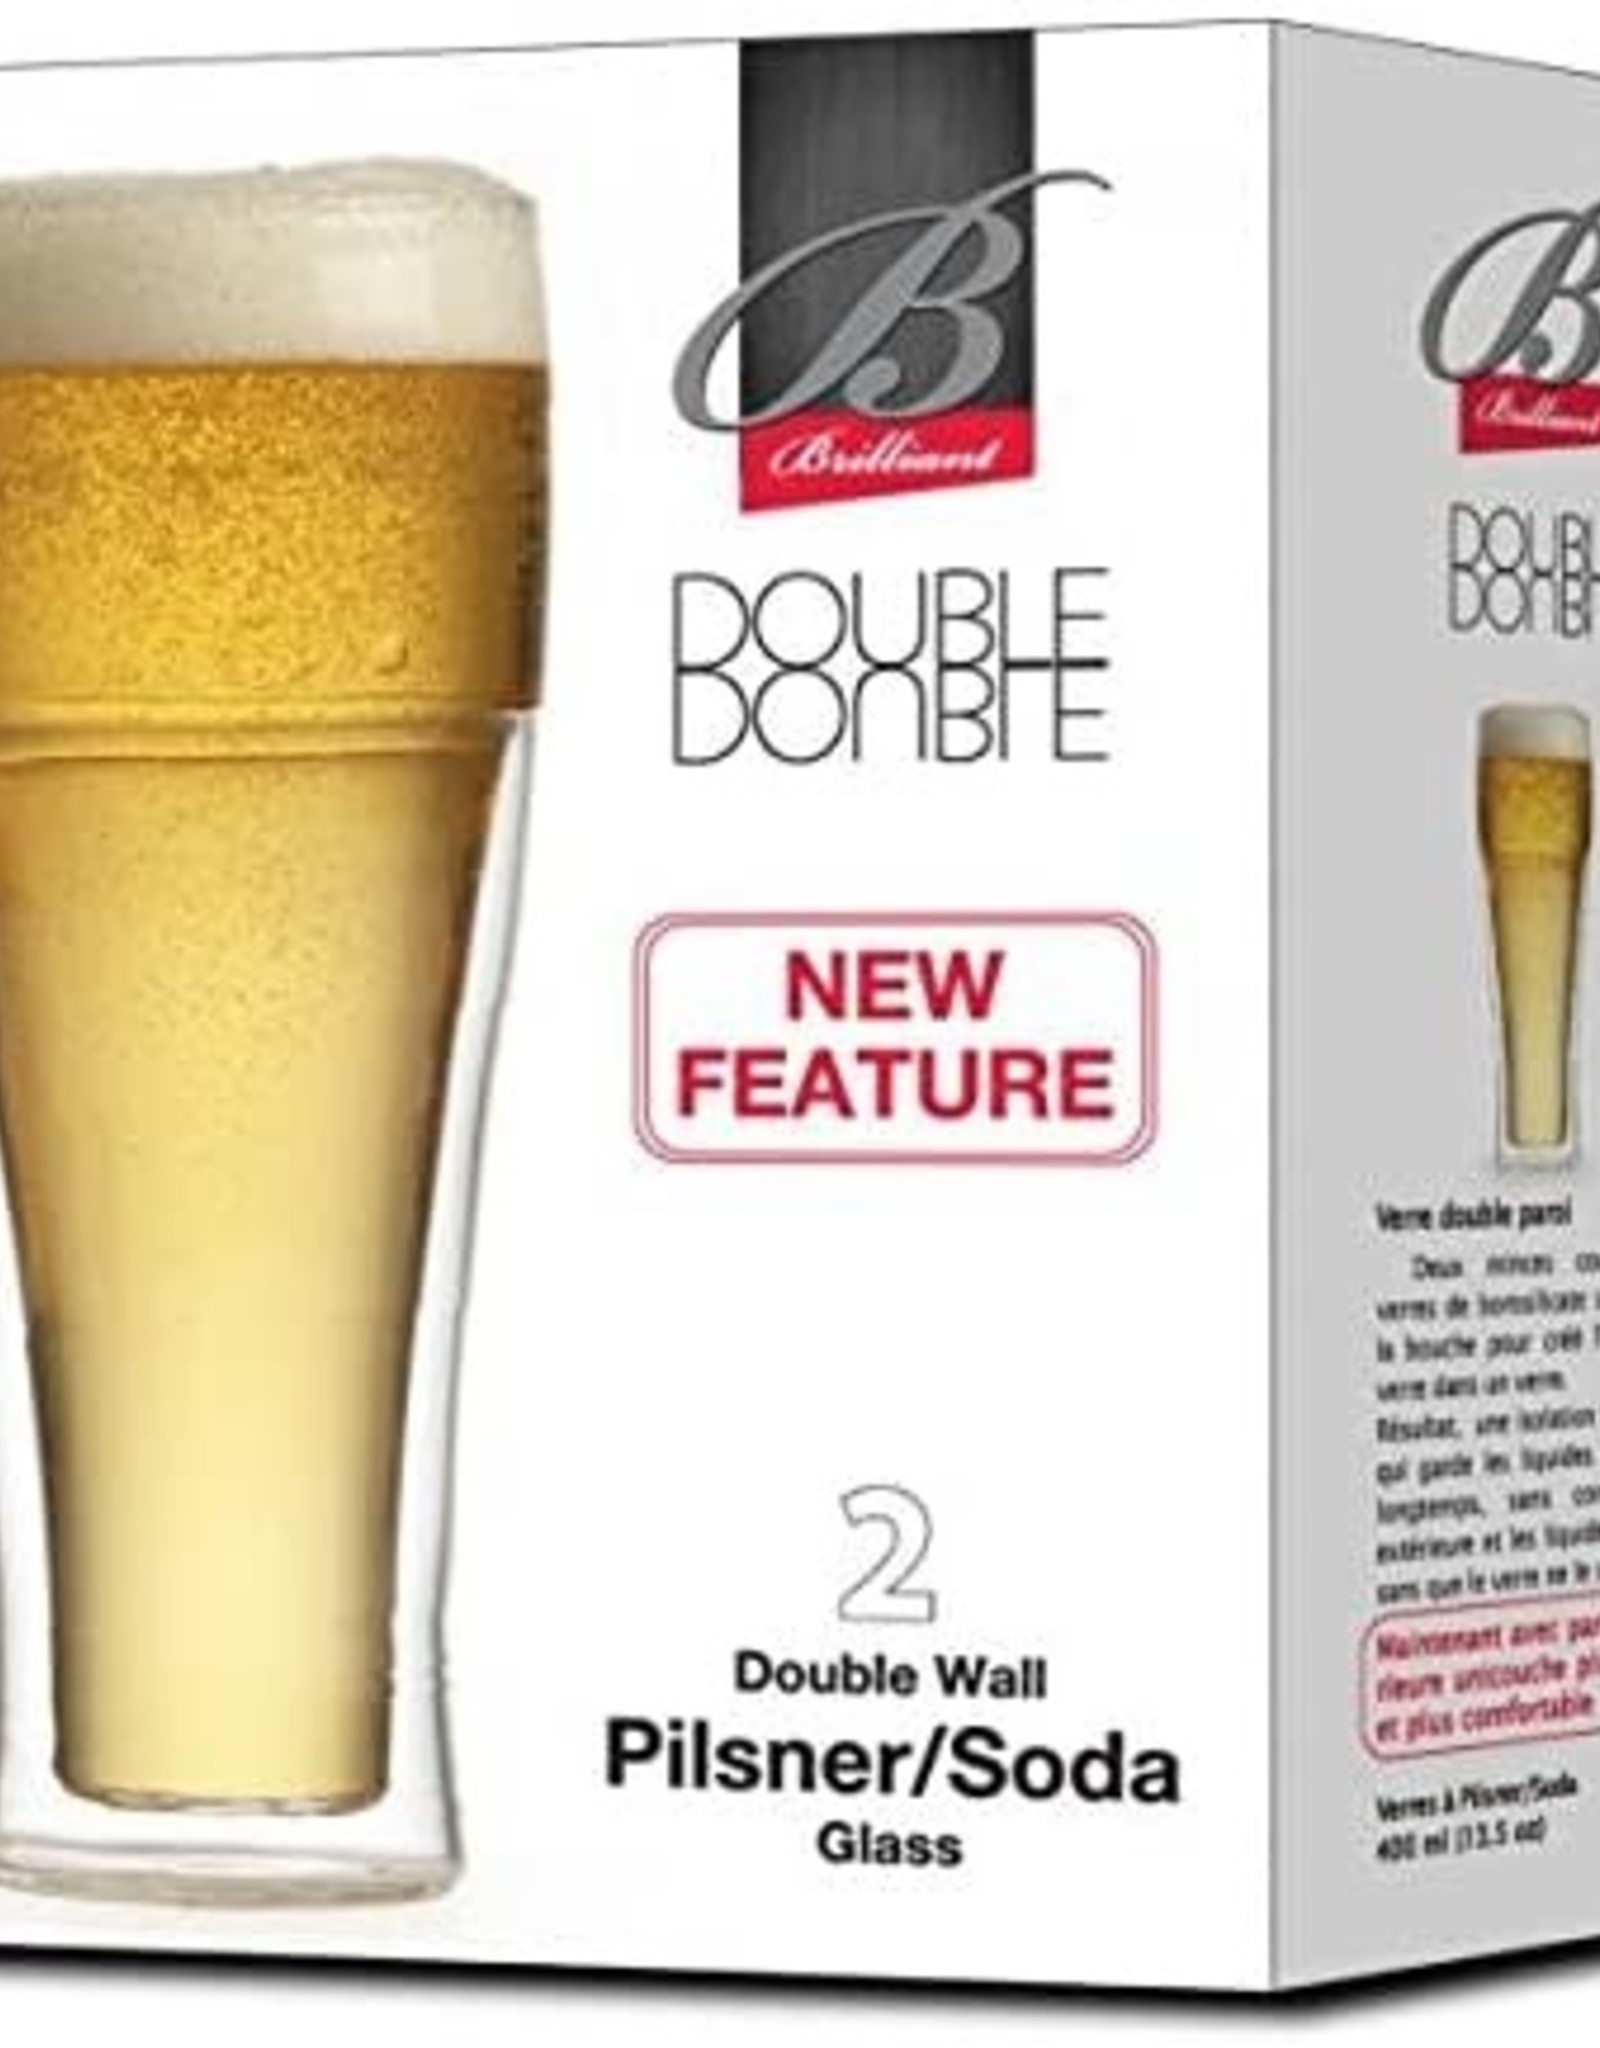 Double Wall Pilsner/Soda Glasses